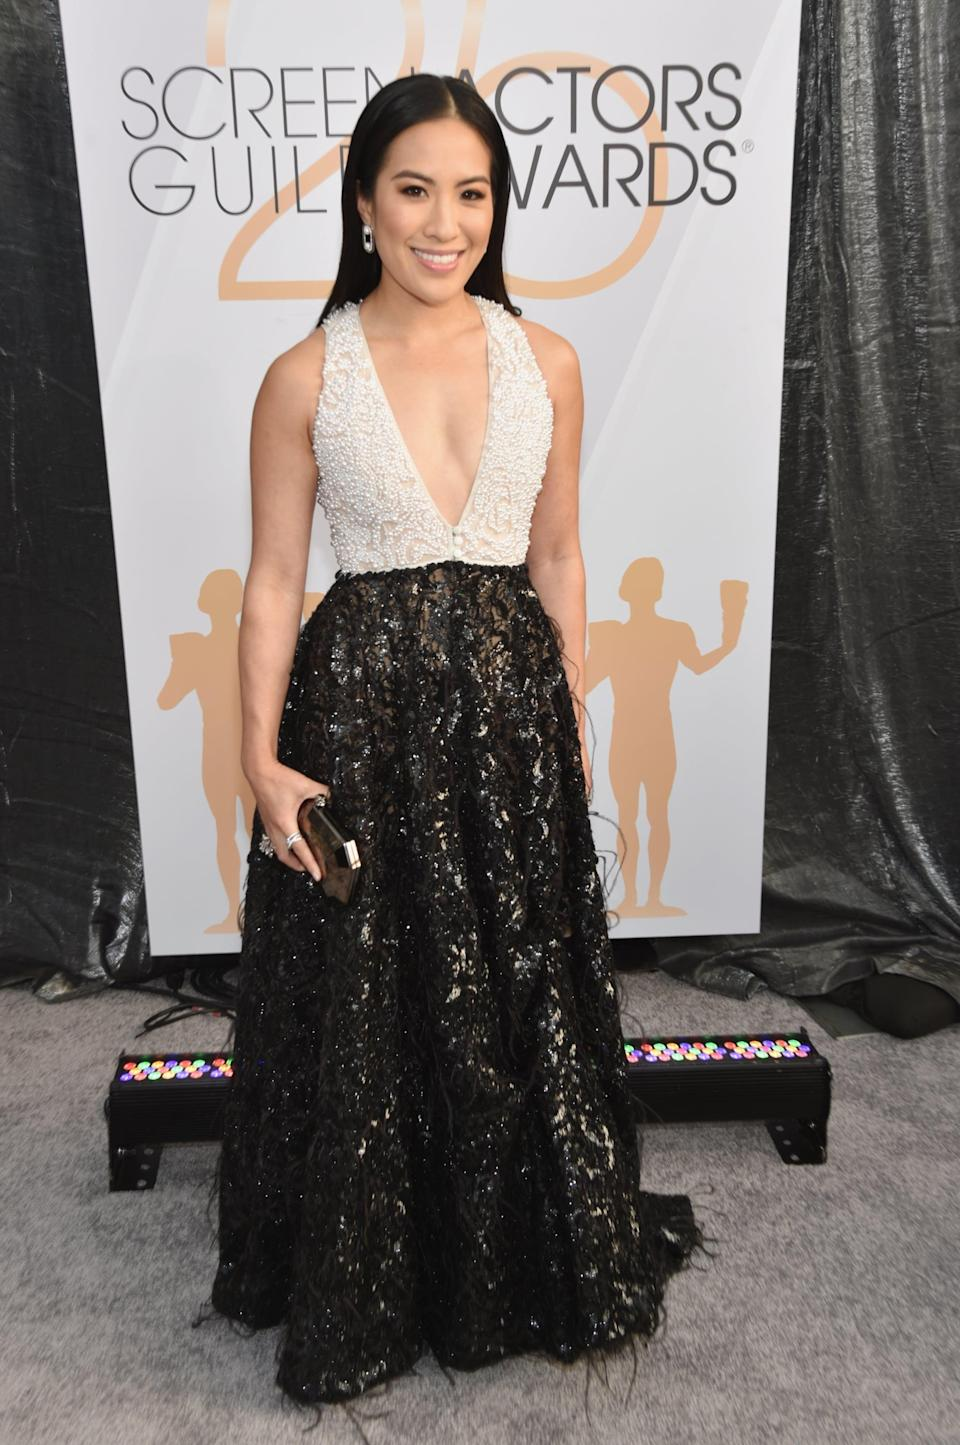 <p>Wearing a white and black gown by Thai Nguyen Atelier gown with Schutz heels.</p>